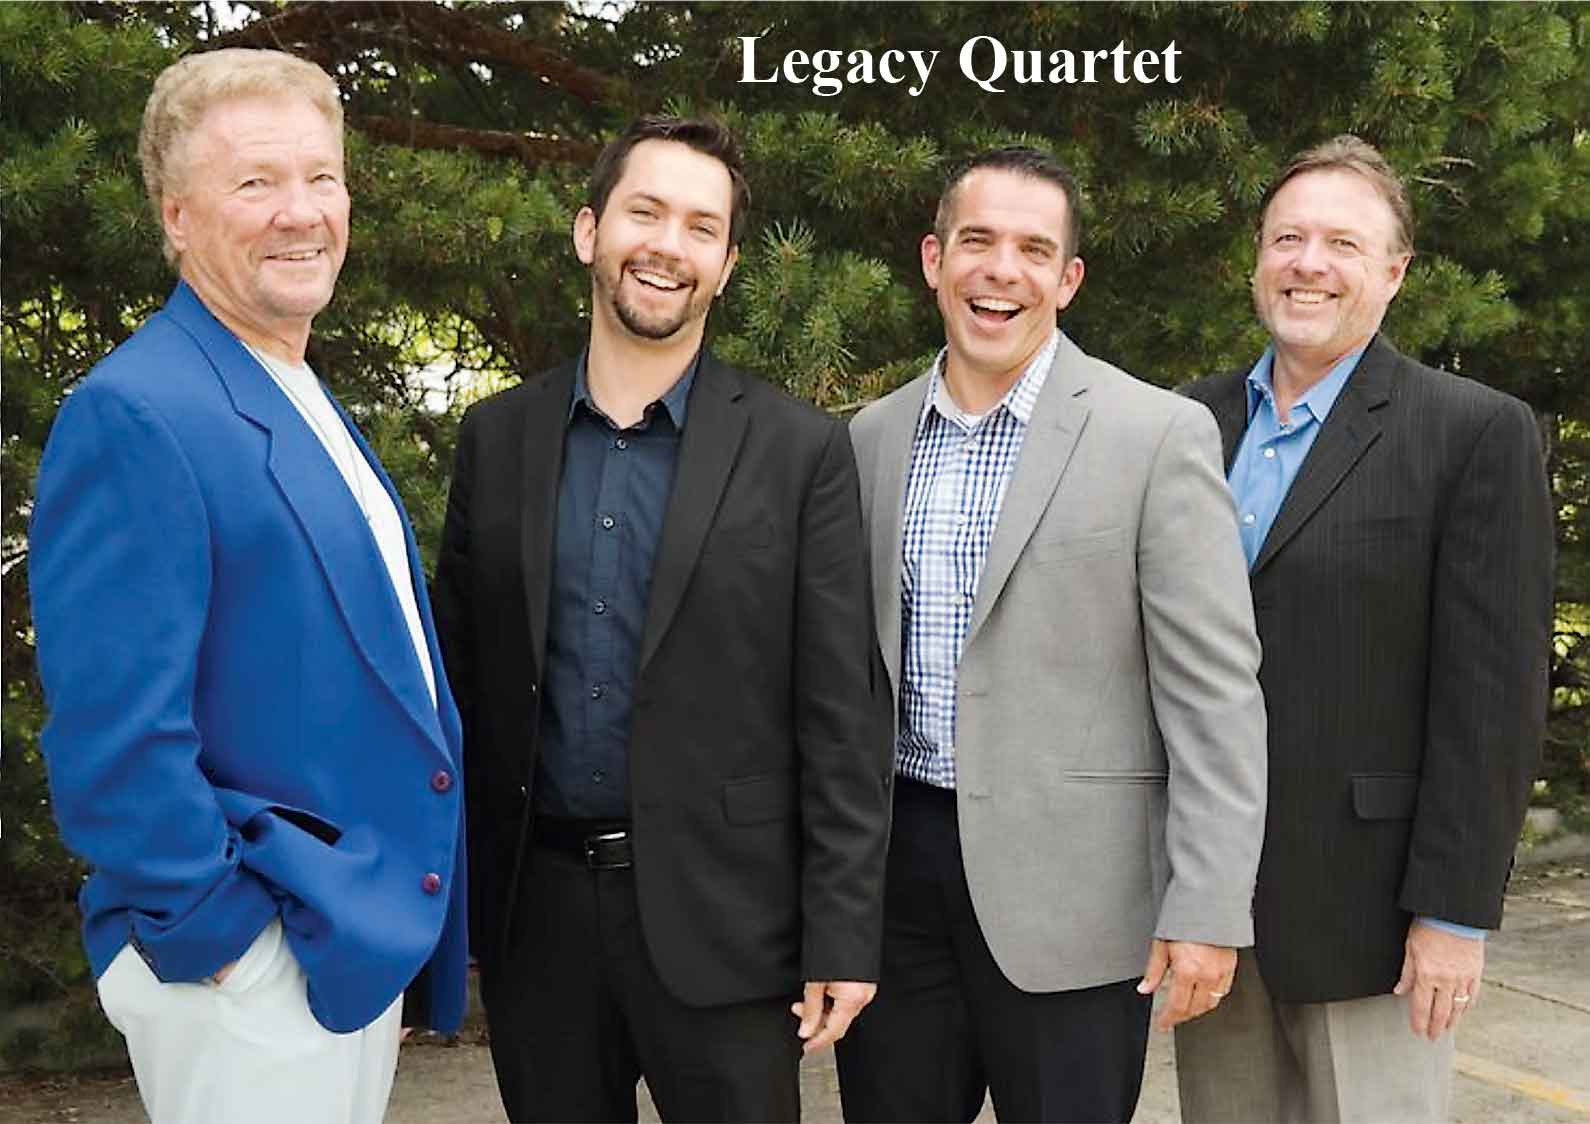 The Legacy Quartet has performed all across America and was featured at the National Day of Prayer in Washington D.C.